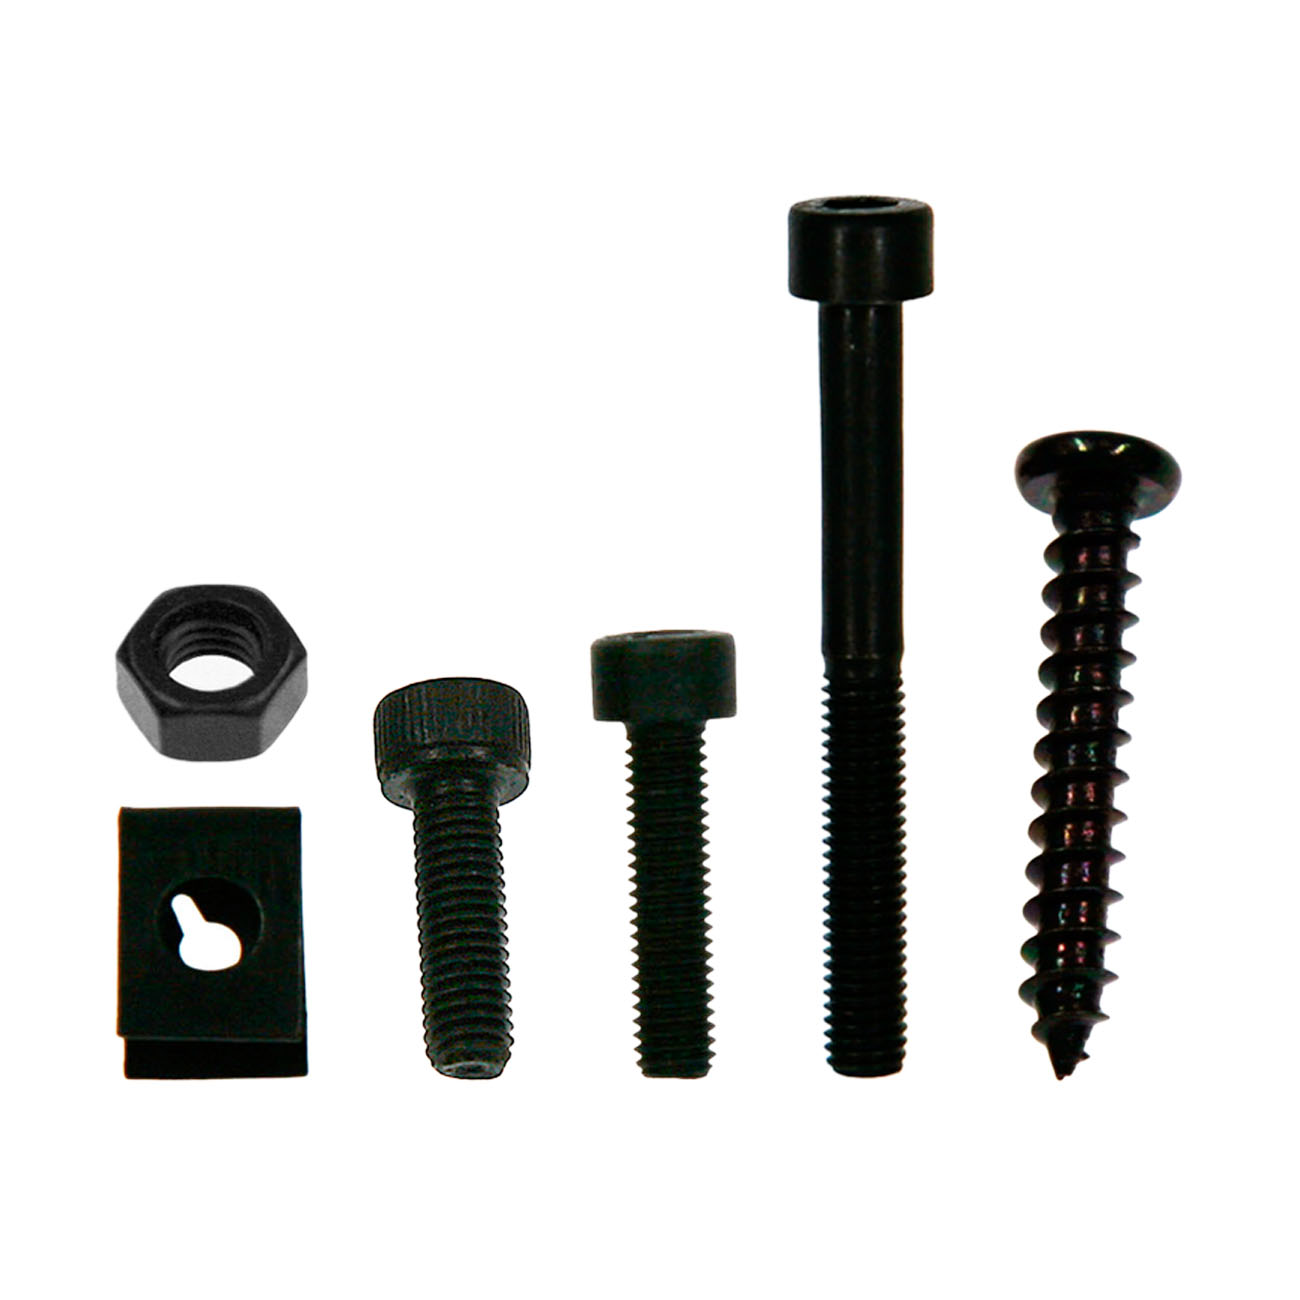 Replacement Screws For Husqvarna 36 41 136 137 141 142 Chainsaw